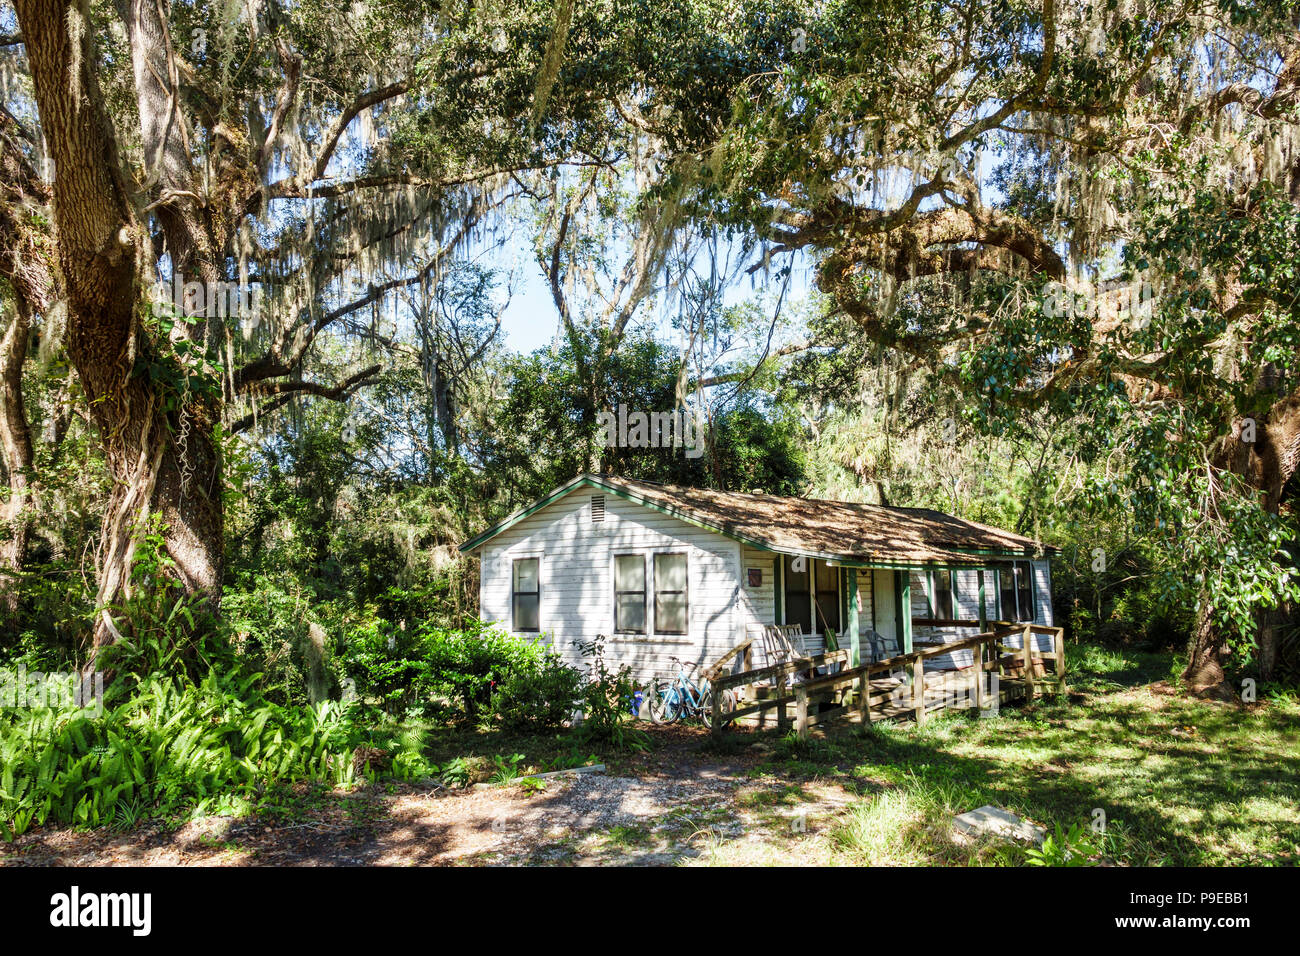 Florida Micanopy Small Town House Wood Frame Home Residence Live Oak